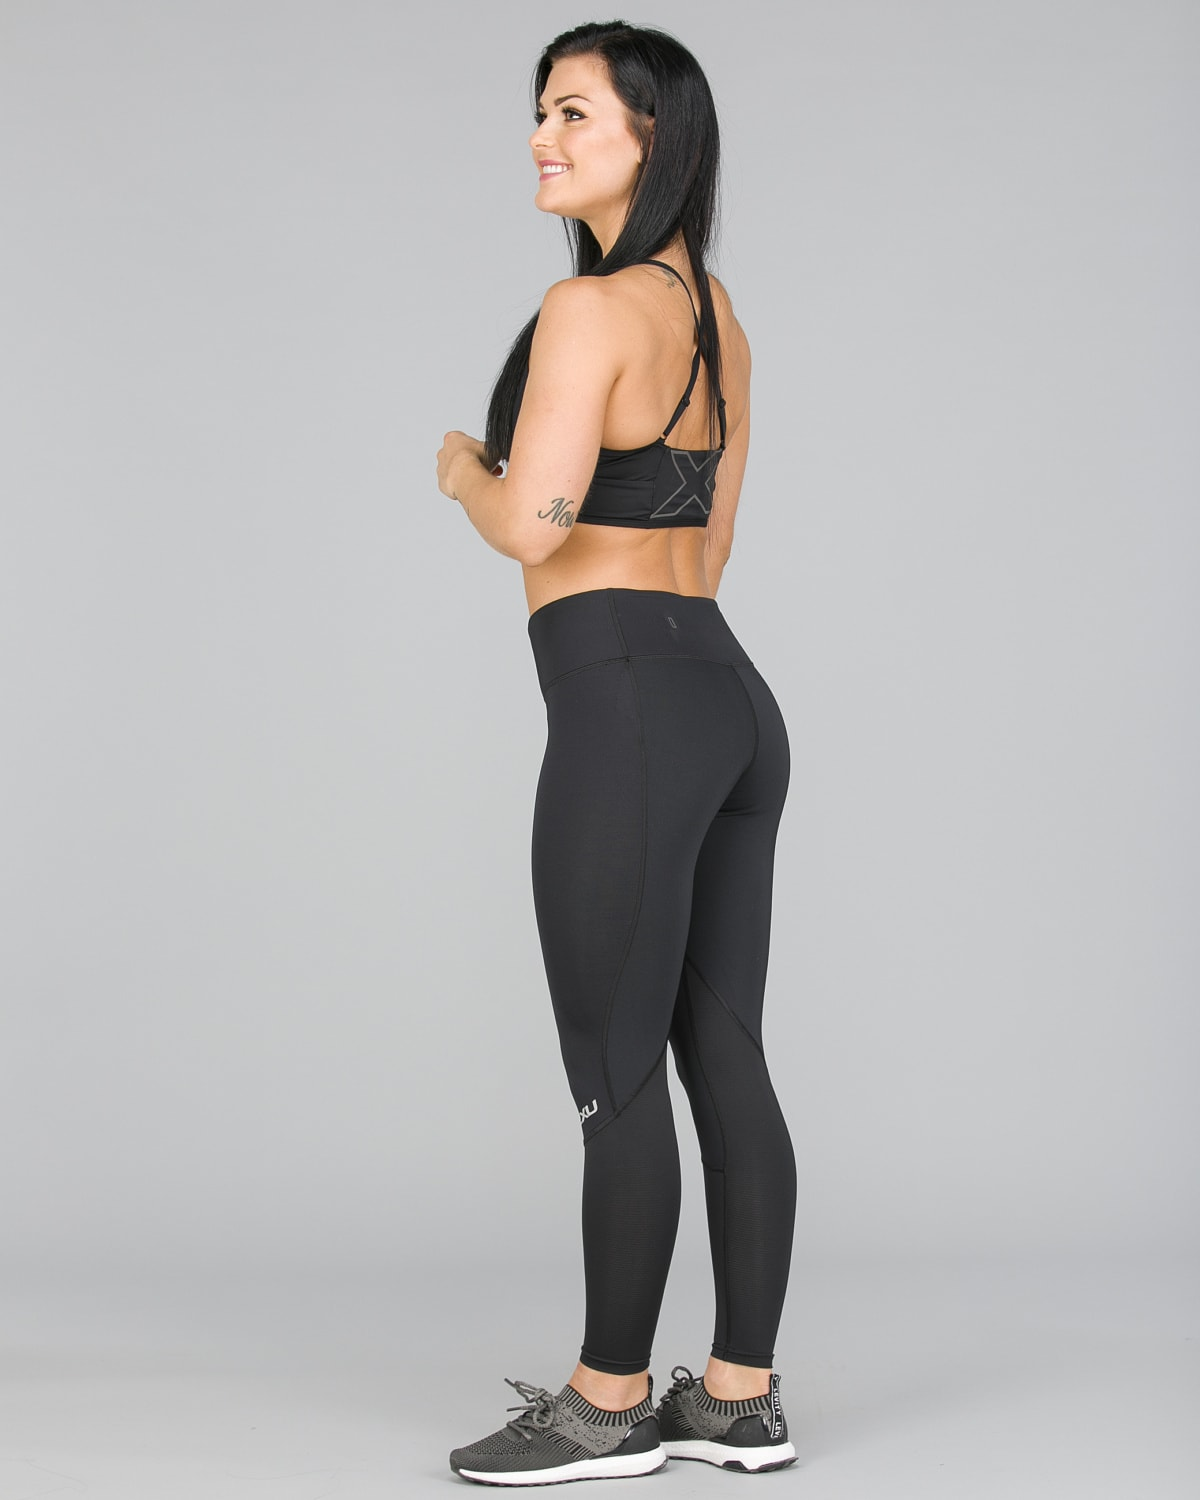 2XU Run Mid-Rise Dash Comp Tights Women – Black:Silver Reflective18